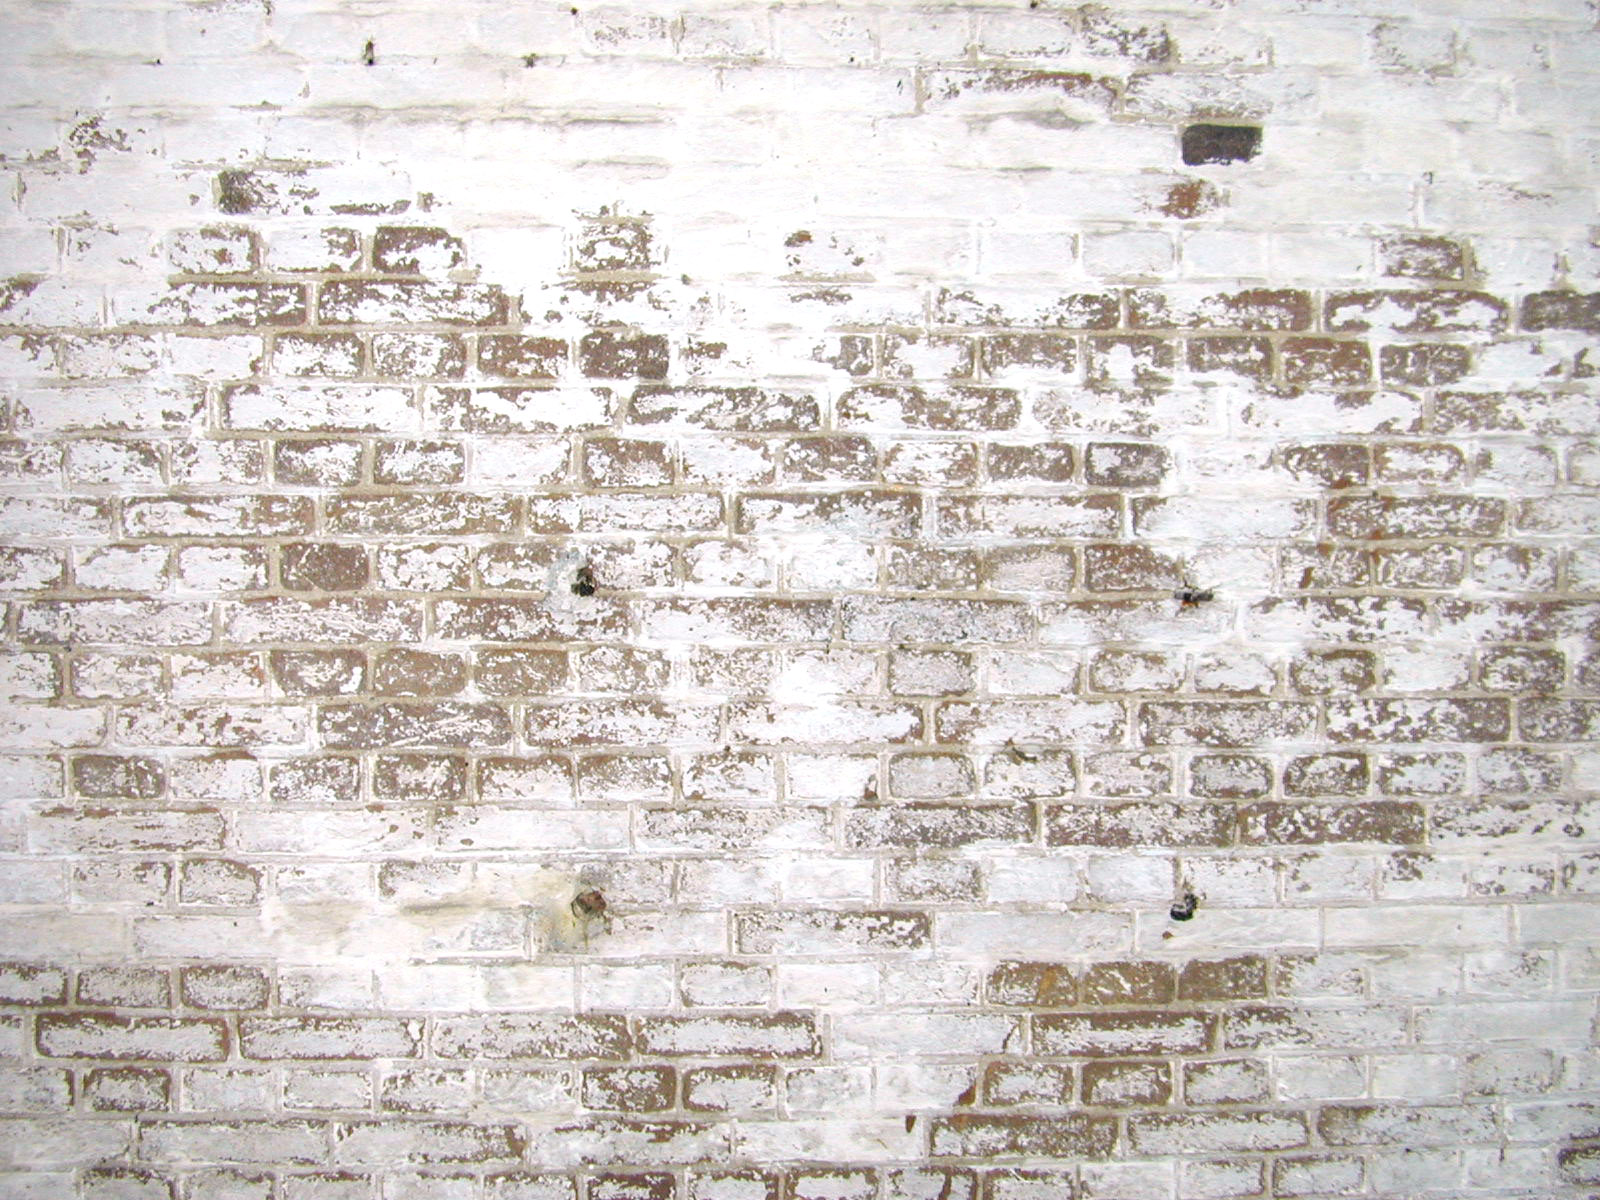 Image after textures white plastered wall bricks dirty for White exposed brick wall